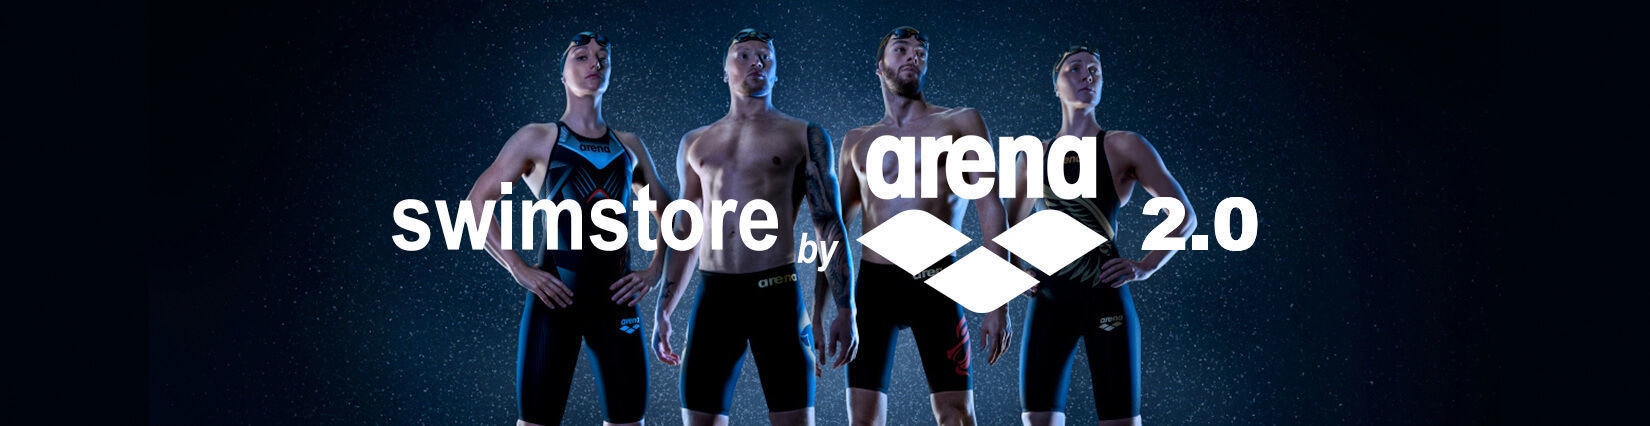 Swimstore by arena 2.0